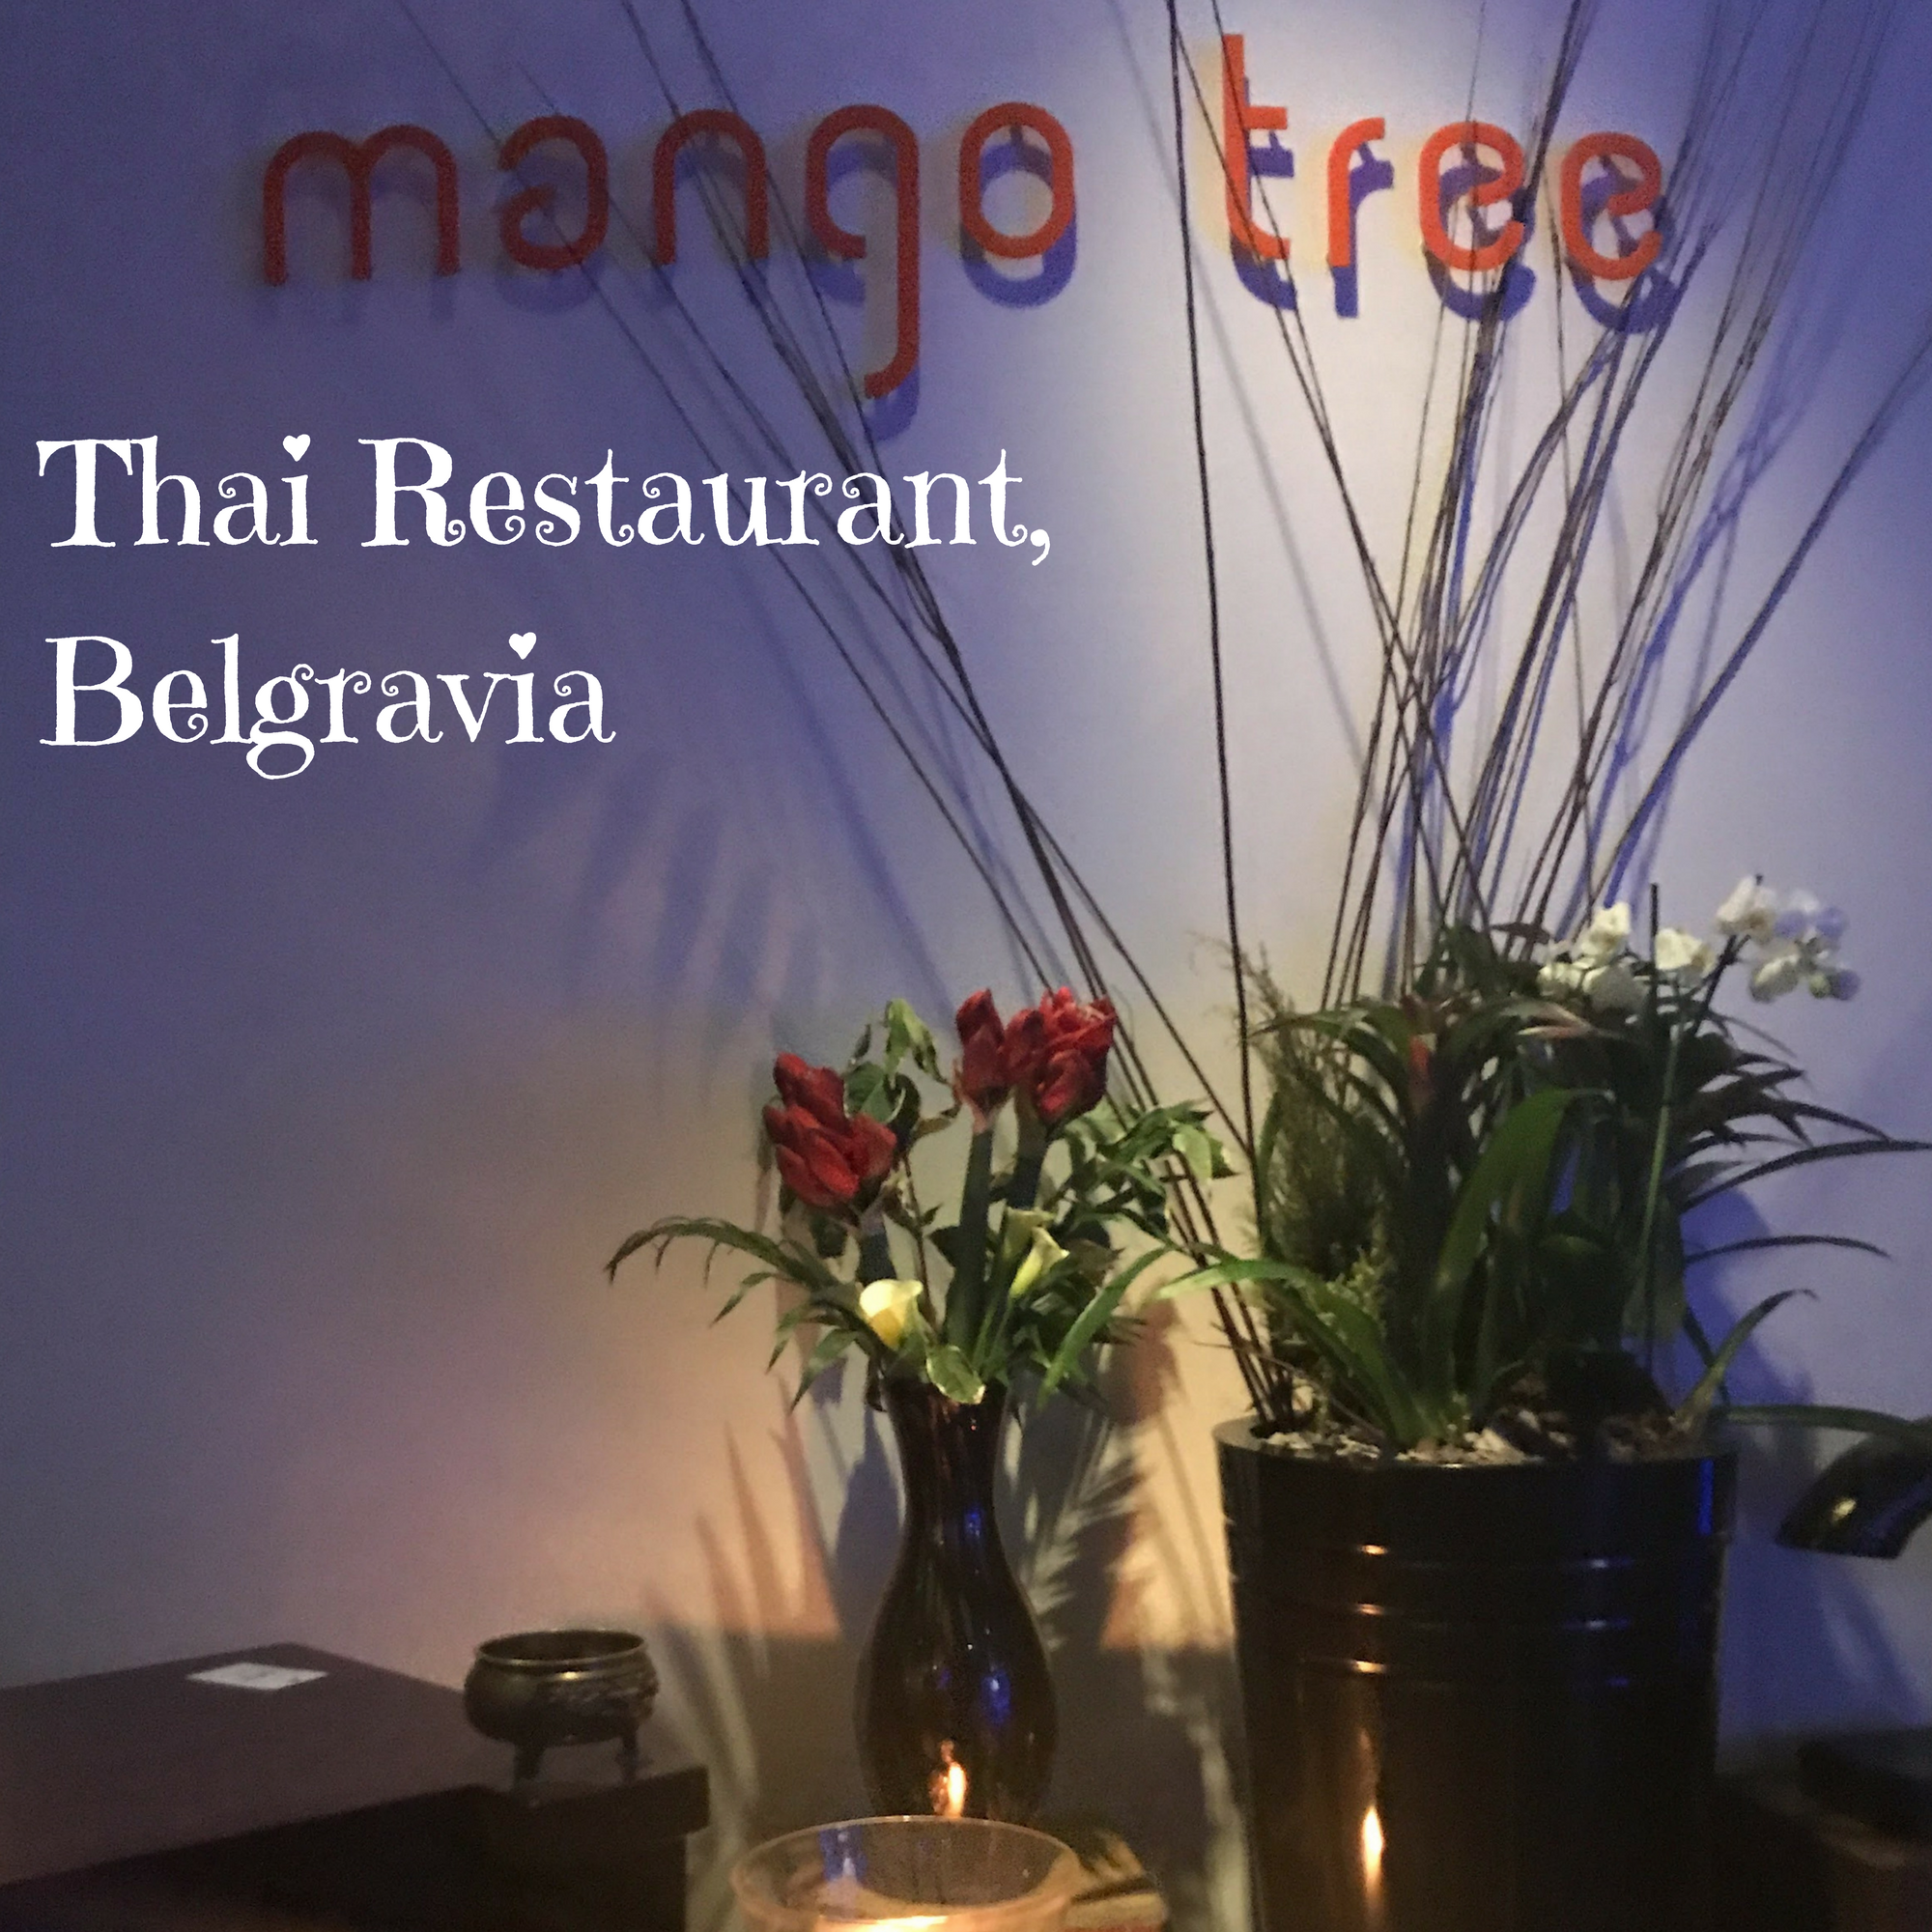 The Mango Tree Thai Restaurant, Belgravia